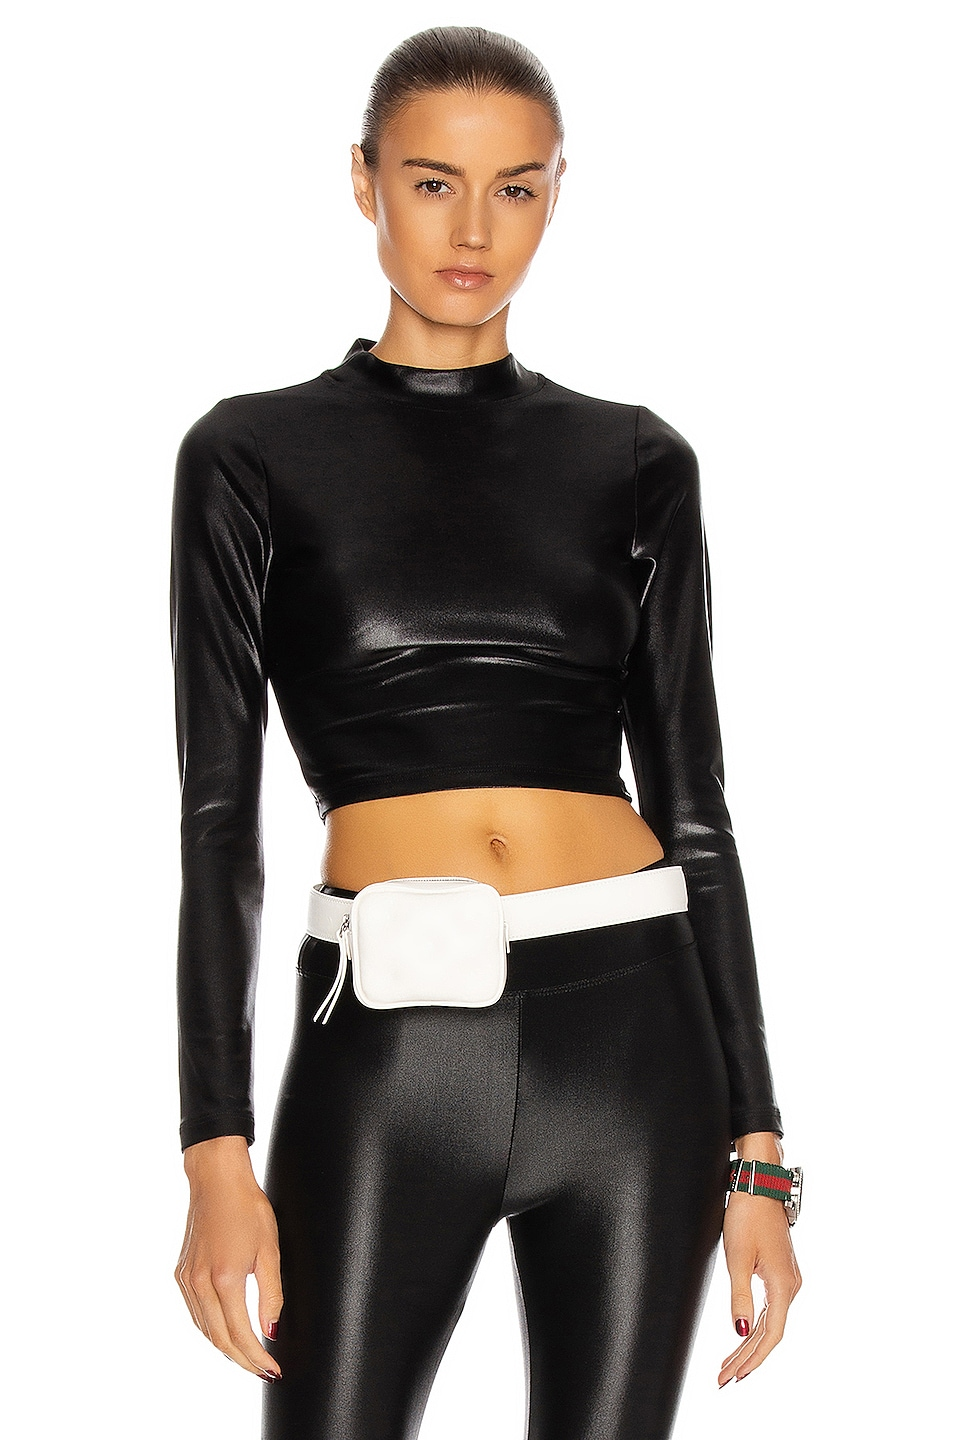 Image 1 of KORAL Luca Infinity Long Sleeve Crop Top in Black